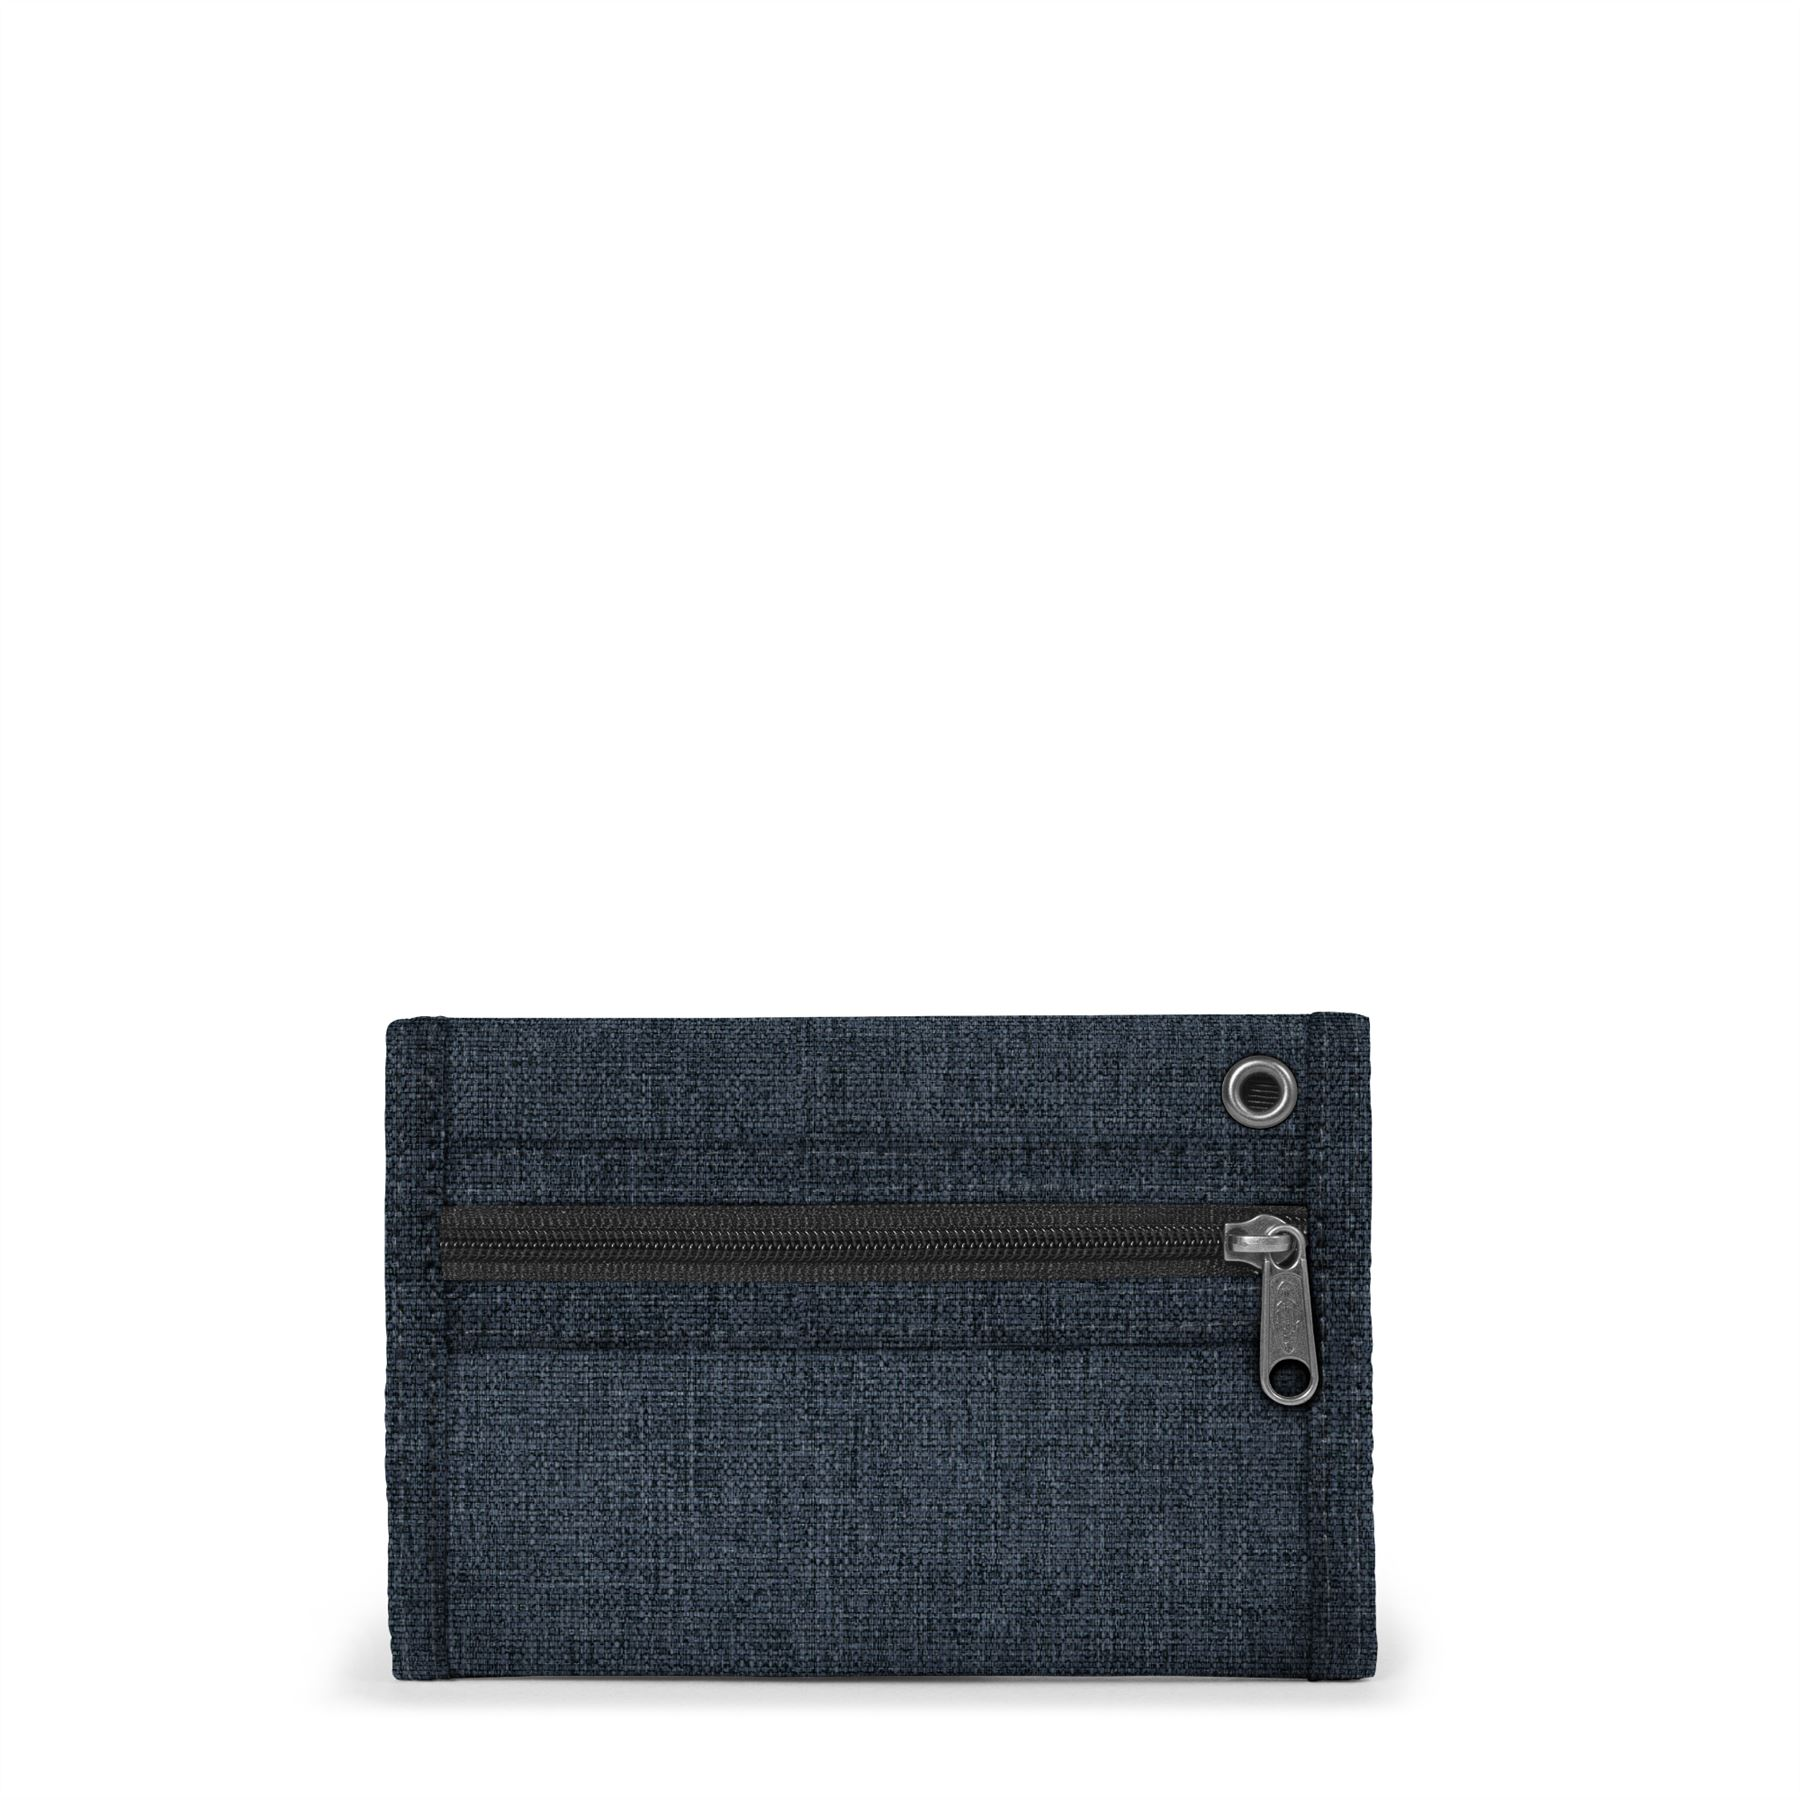 Eastpak Crew Wallet Cards Notes Zipped Coin Pocket NEW 2018 Colours